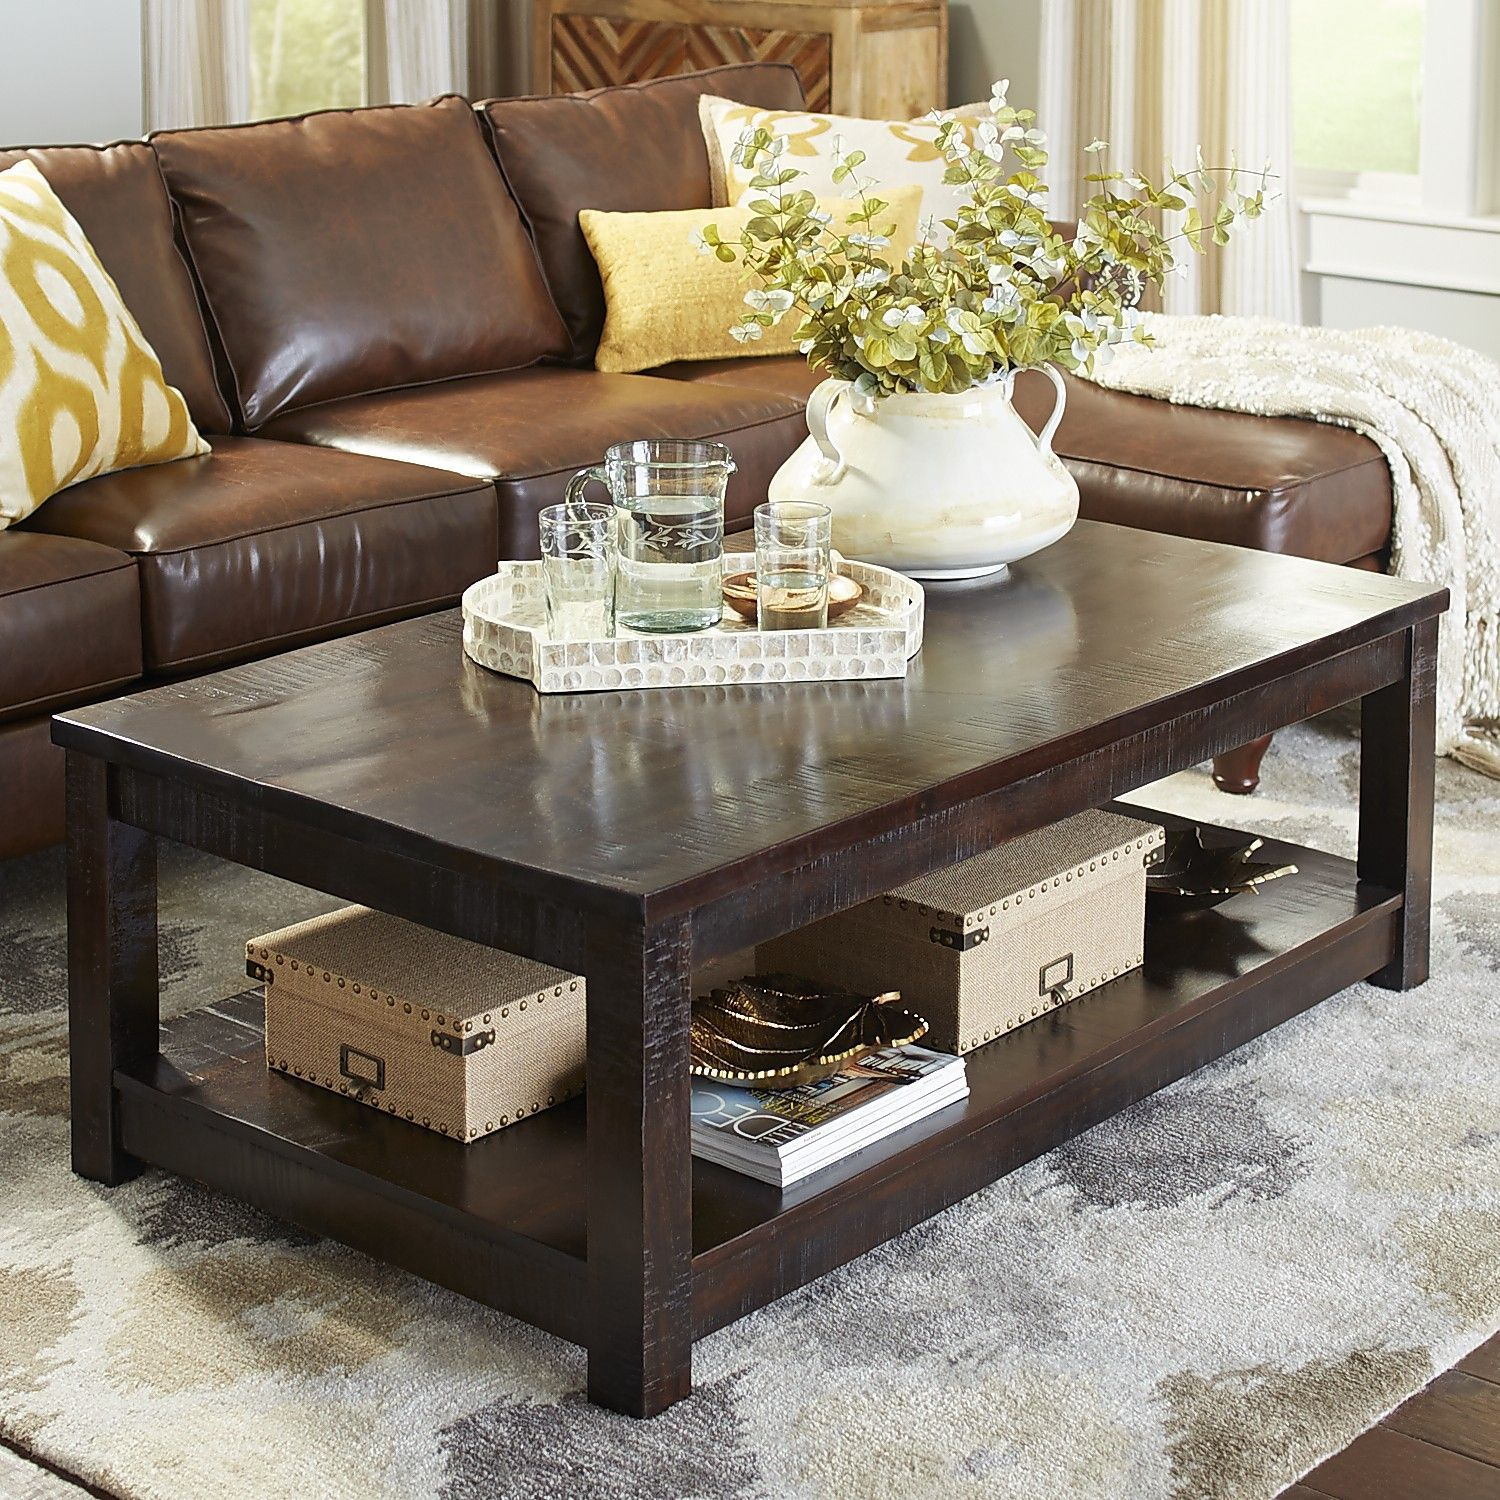 Parsons End Table Pier One: Parsons Large Tobacco Brown Coffee Table